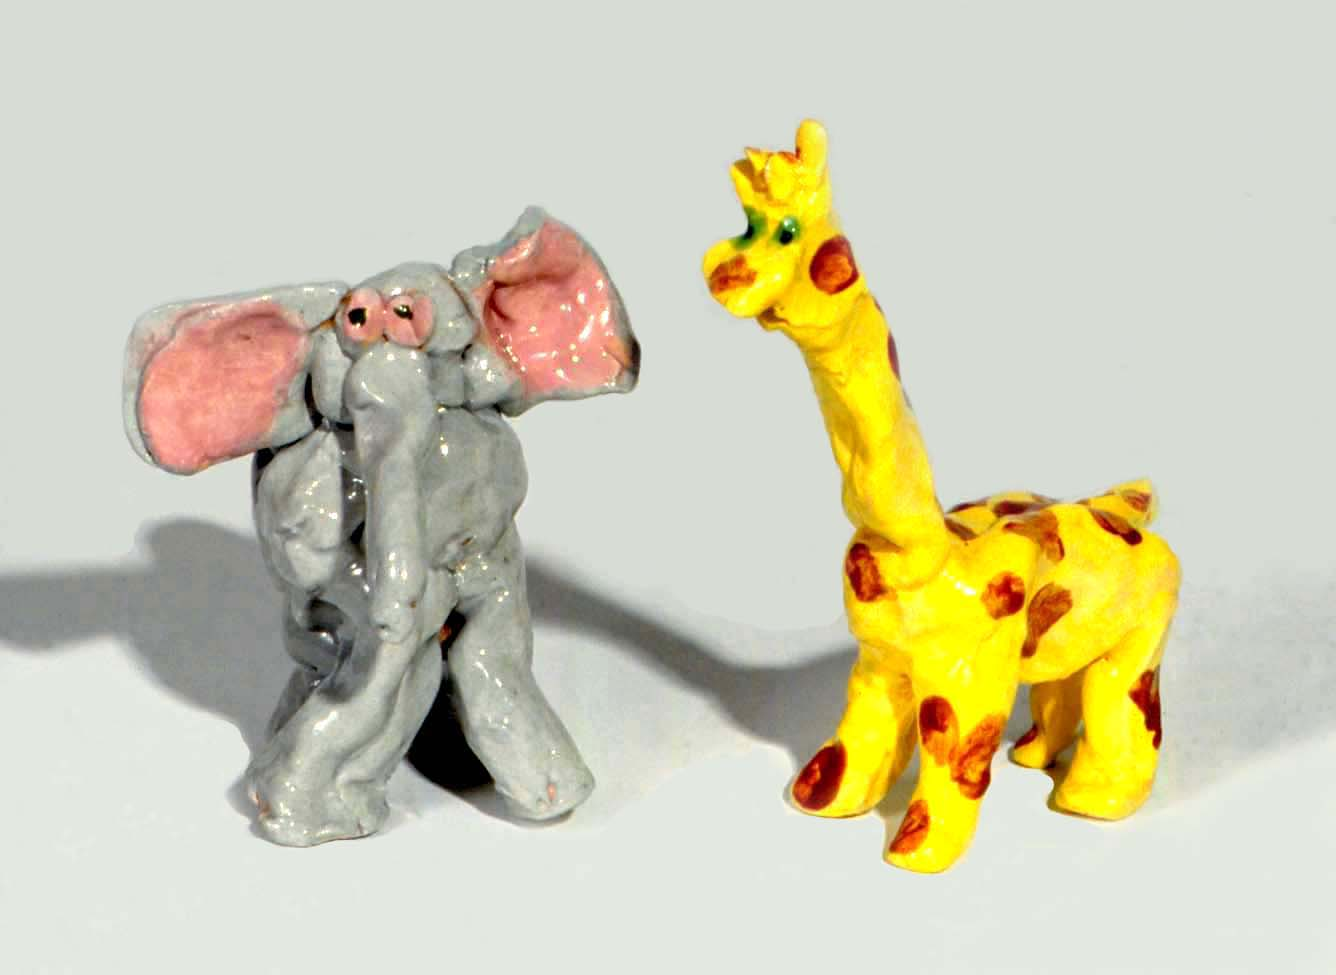 animal clay projects - photo #36